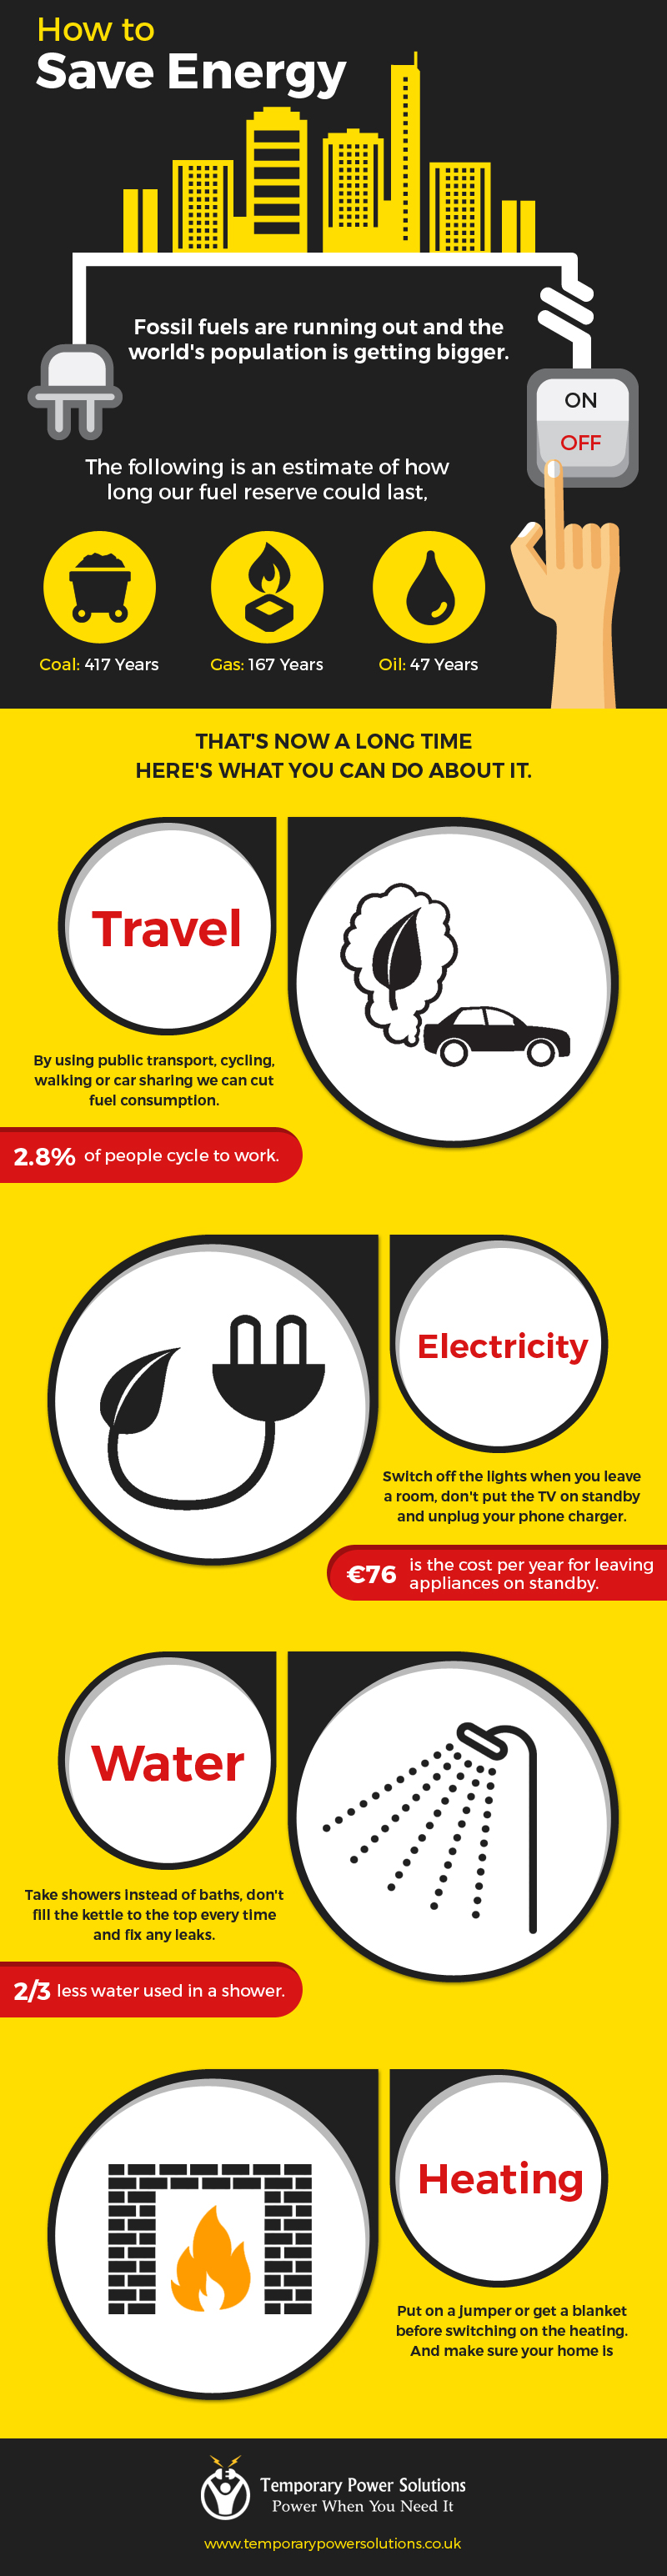 Simple Ways You Can Save Energy Infographic The Local